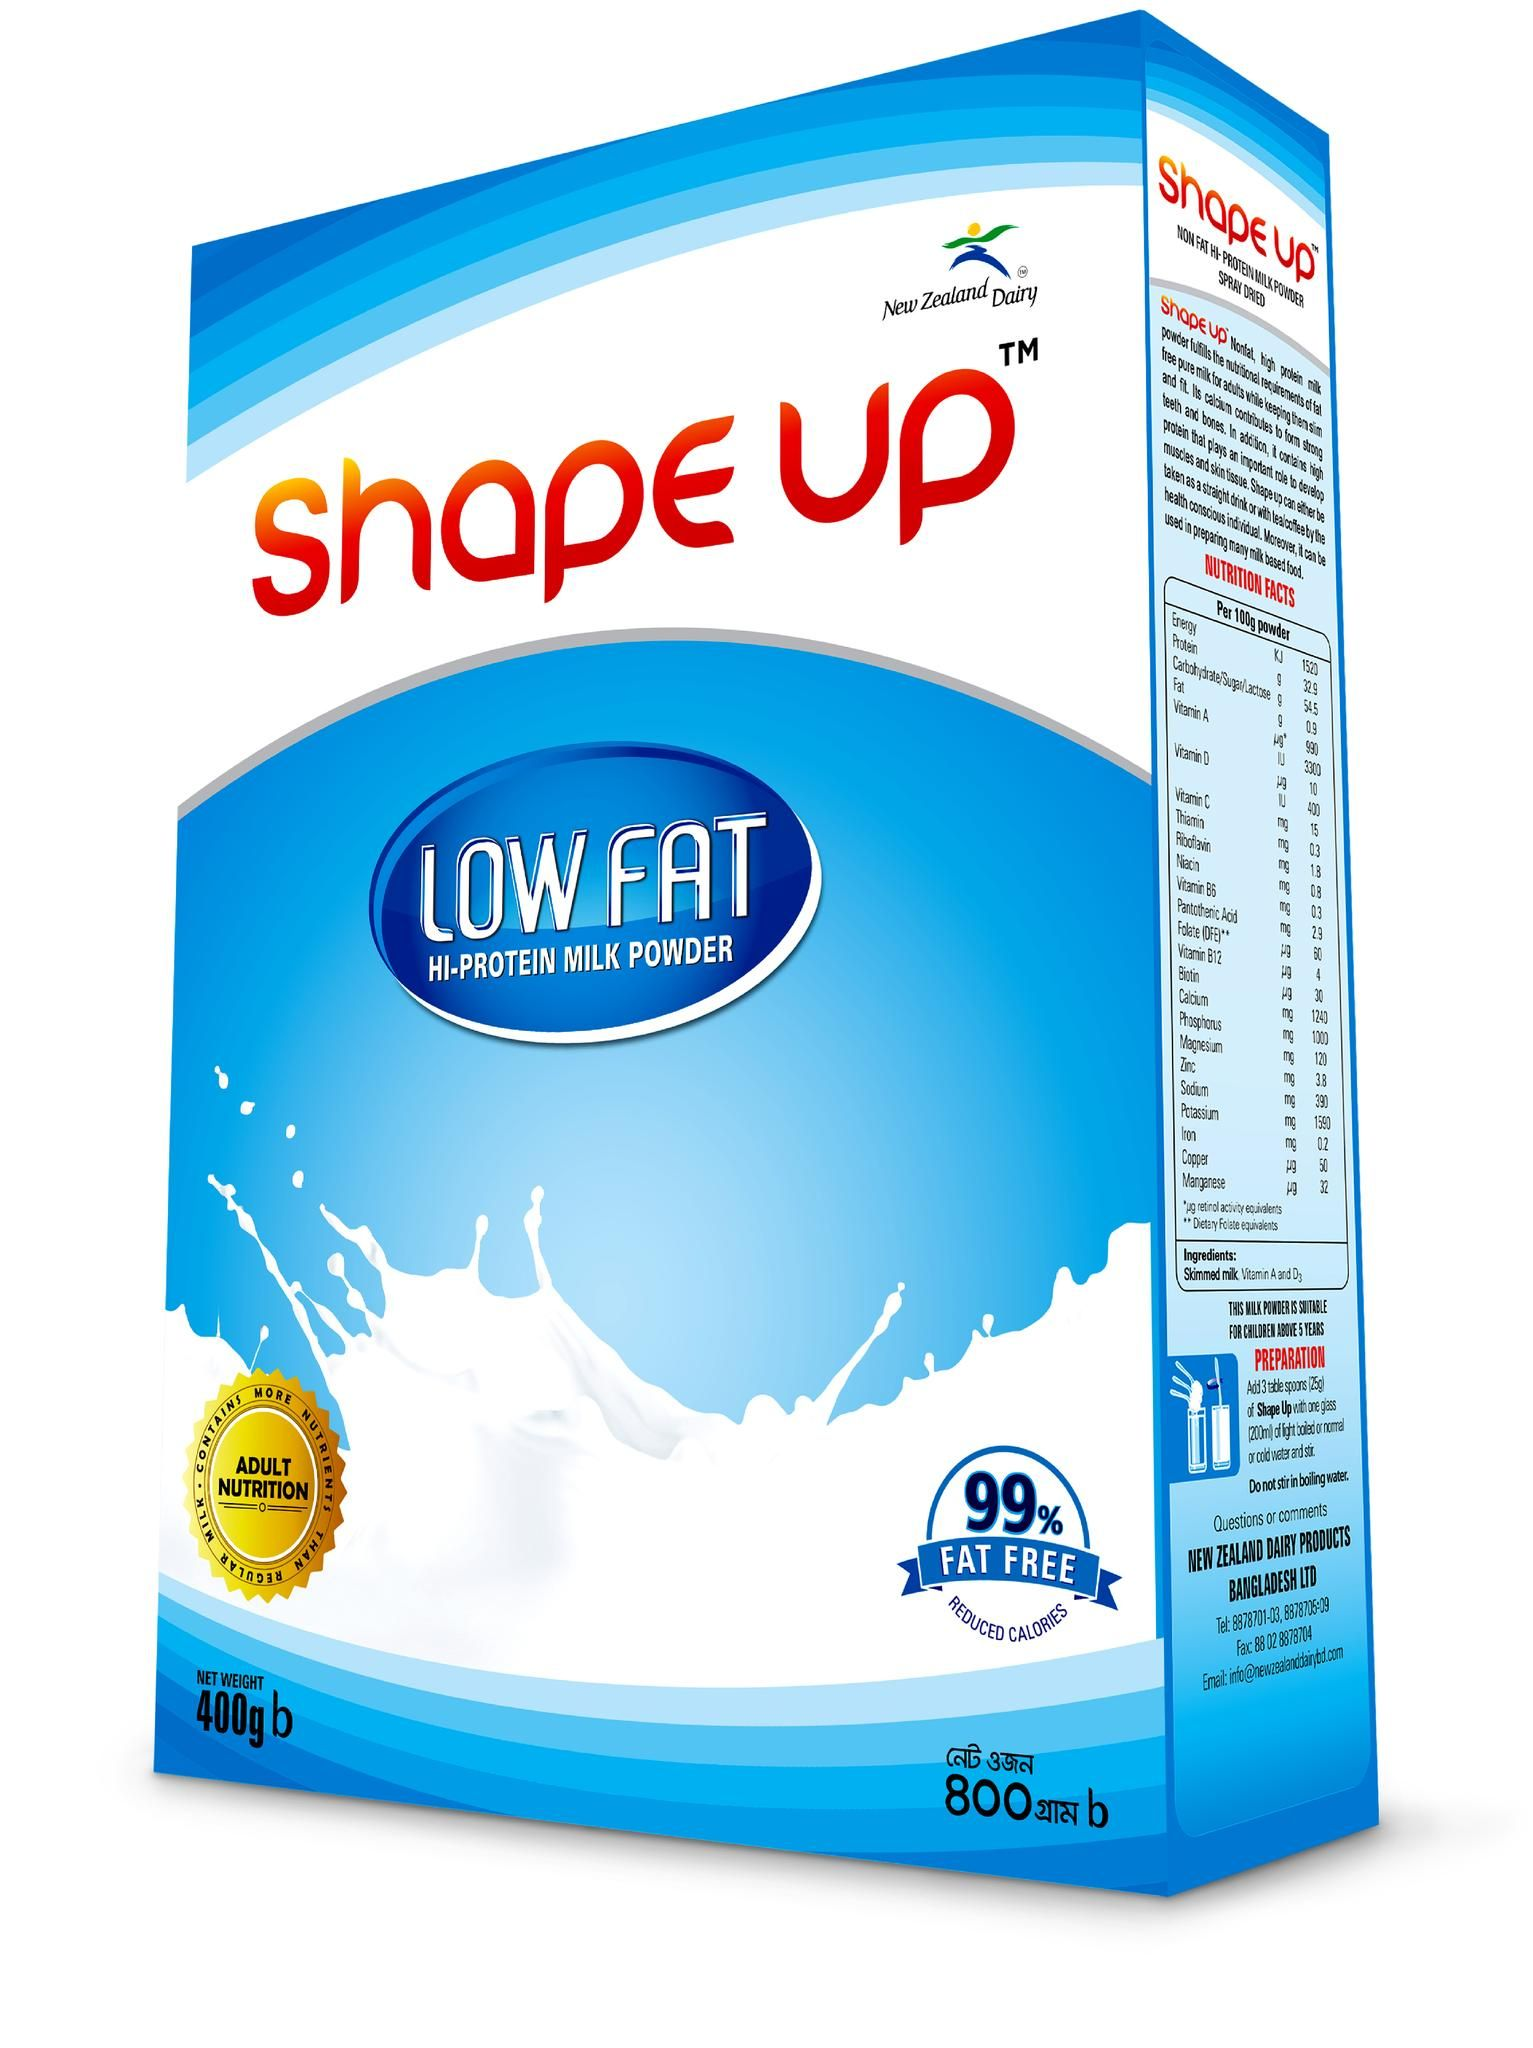 Shape Up Hi-Protein Low Fat Milk Powder